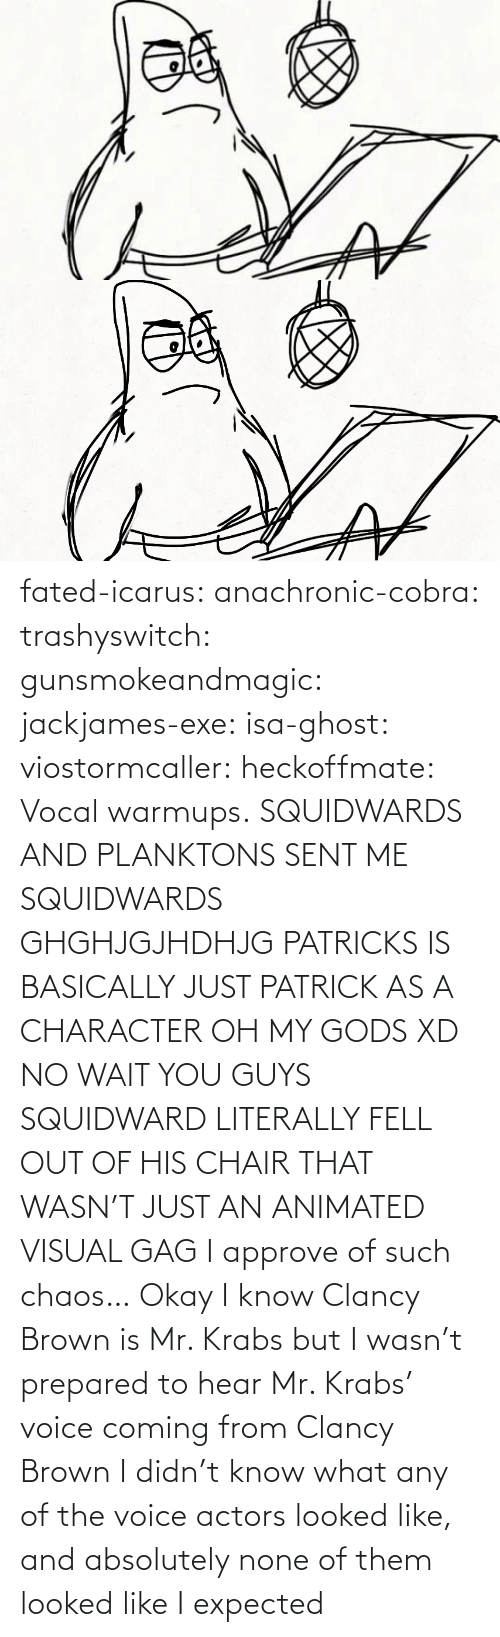 brown: fated-icarus:  anachronic-cobra: trashyswitch:  gunsmokeandmagic:  jackjames-exe:  isa-ghost:   viostormcaller:  heckoffmate: Vocal warmups. SQUIDWARDS AND PLANKTONS SENT ME  SQUIDWARDS GHGHJGJHDHJG   PATRICKS IS BASICALLY JUST PATRICK AS A CHARACTER OH MY GODS XD   NO WAIT YOU GUYS SQUIDWARD LITERALLY FELL OUT OF HIS CHAIR THAT WASN'T JUST AN ANIMATED VISUAL GAG    I approve of such chaos…    Okay I know Clancy Brown is Mr. Krabs but I wasn't prepared to hear Mr. Krabs' voice coming from Clancy Brown    I didn't know what any of the voice actors looked like, and absolutely none of them looked like I expected